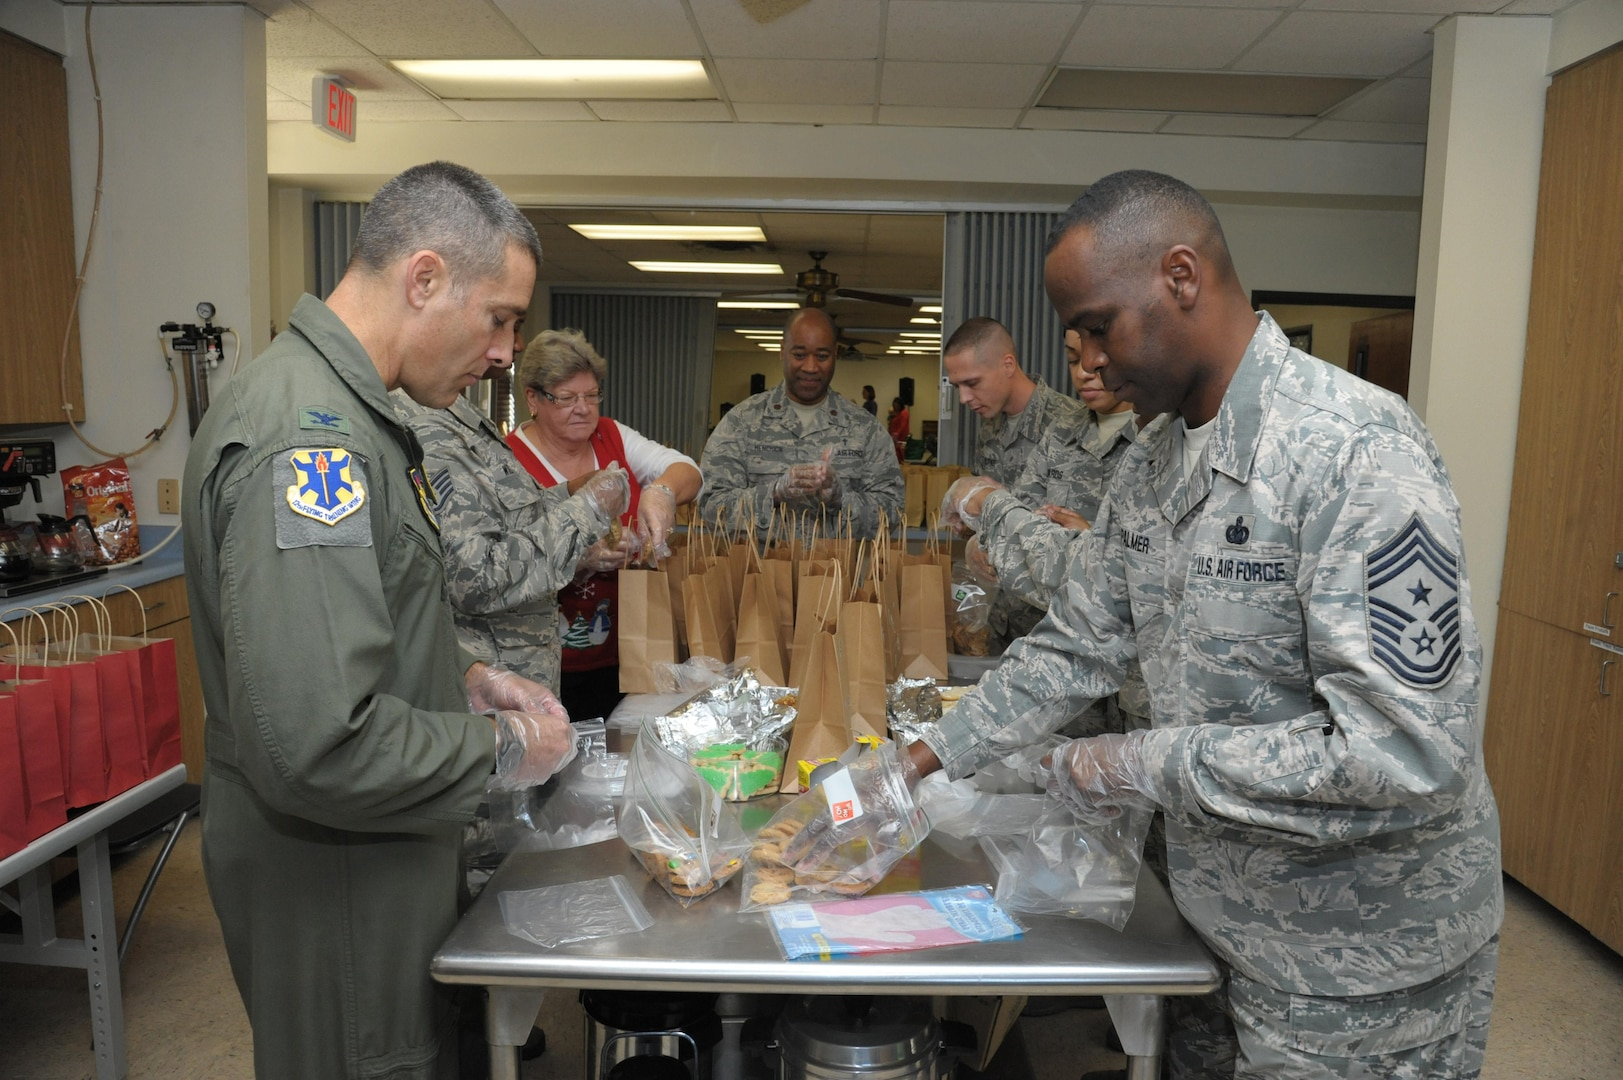 Col. Matthew Isler (left), 12th Flying Training Wing commander, and Chief Master Sgt. Troy Palmer, 12th FTW command chief, along with other JBSA-Randolph members, help bag cookies Dec. 9 during the cookie drive at Joint Base San Antonio-Randolph. The program provides baked goods to single Airmen who otherwise may not get home-cooked treats during the holidays.